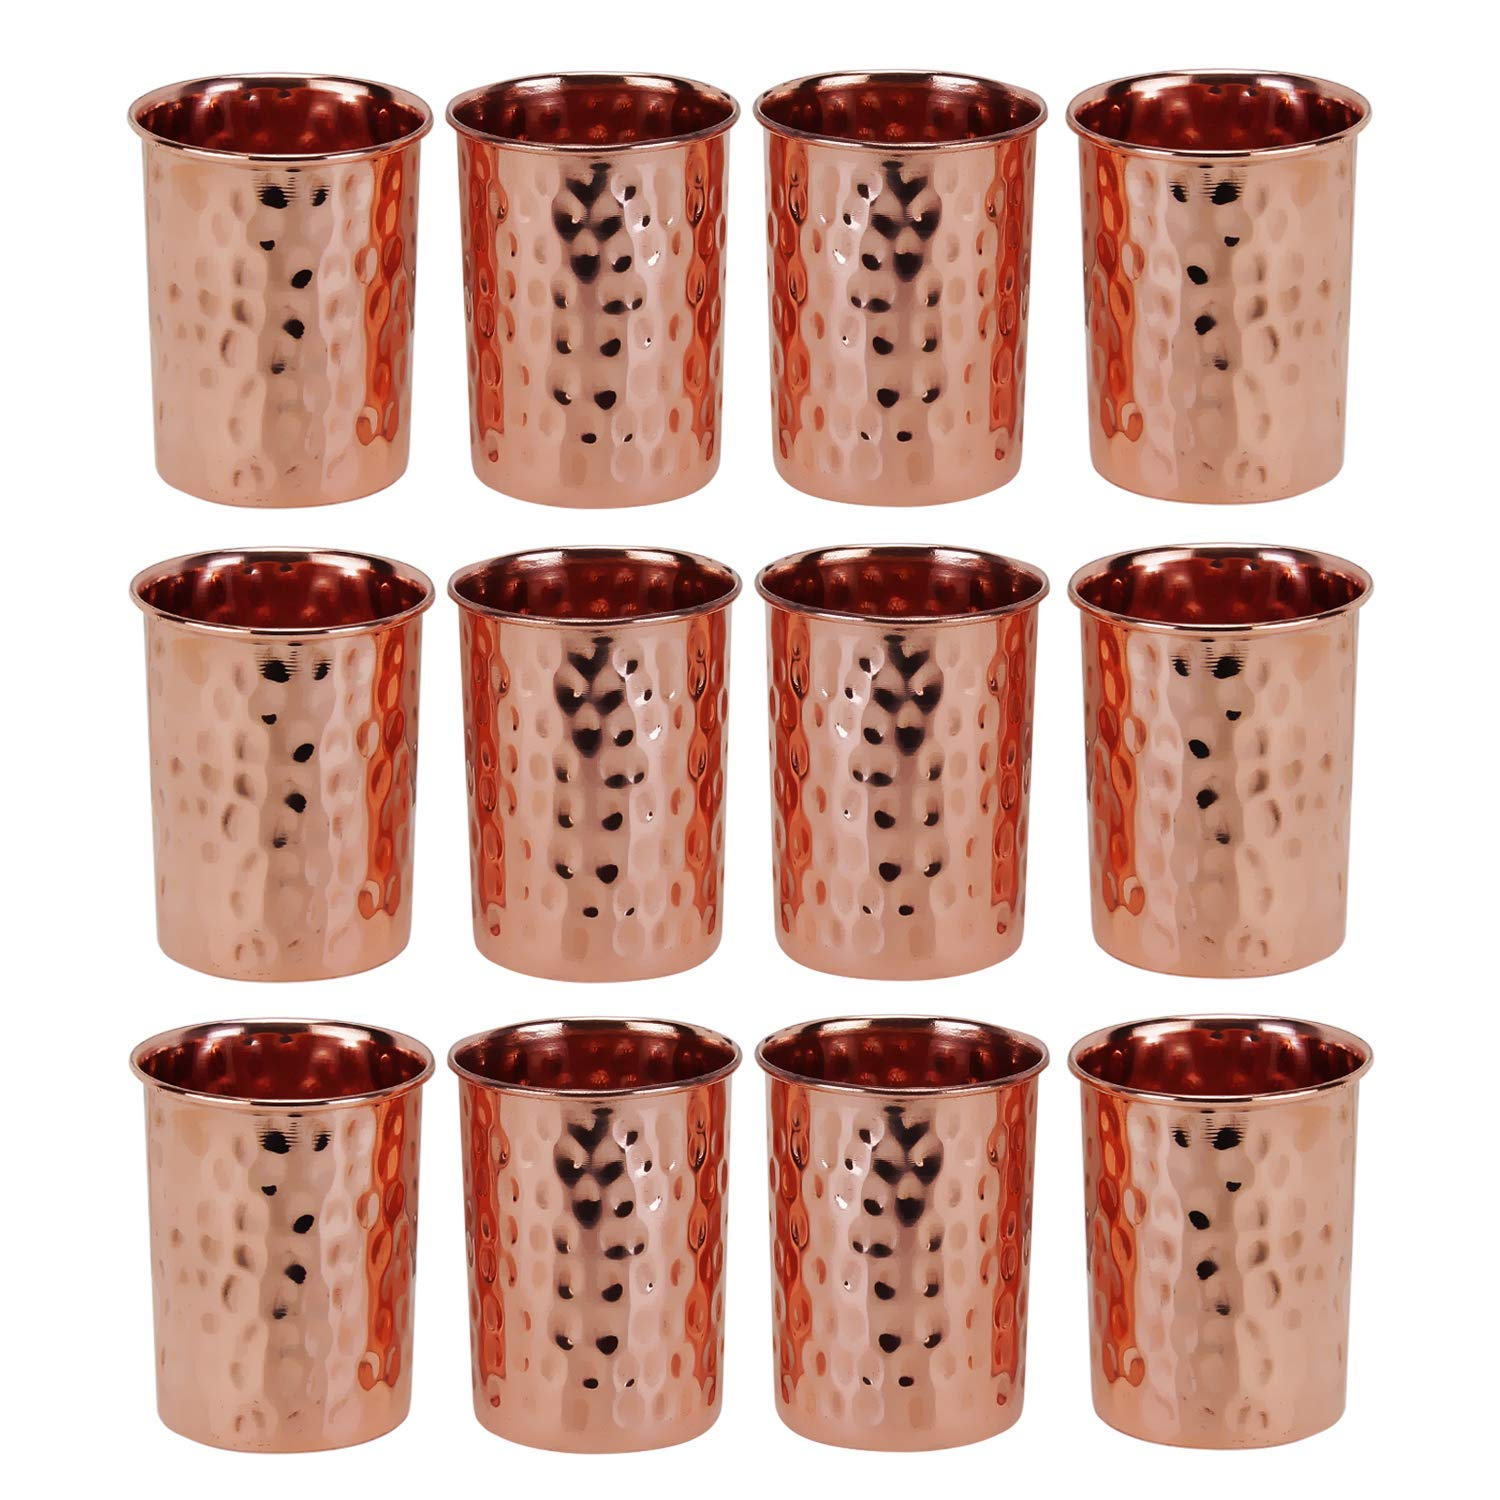 Zap Impex Pure copper hammered glasses moscow mule tumbler (Set of 12)